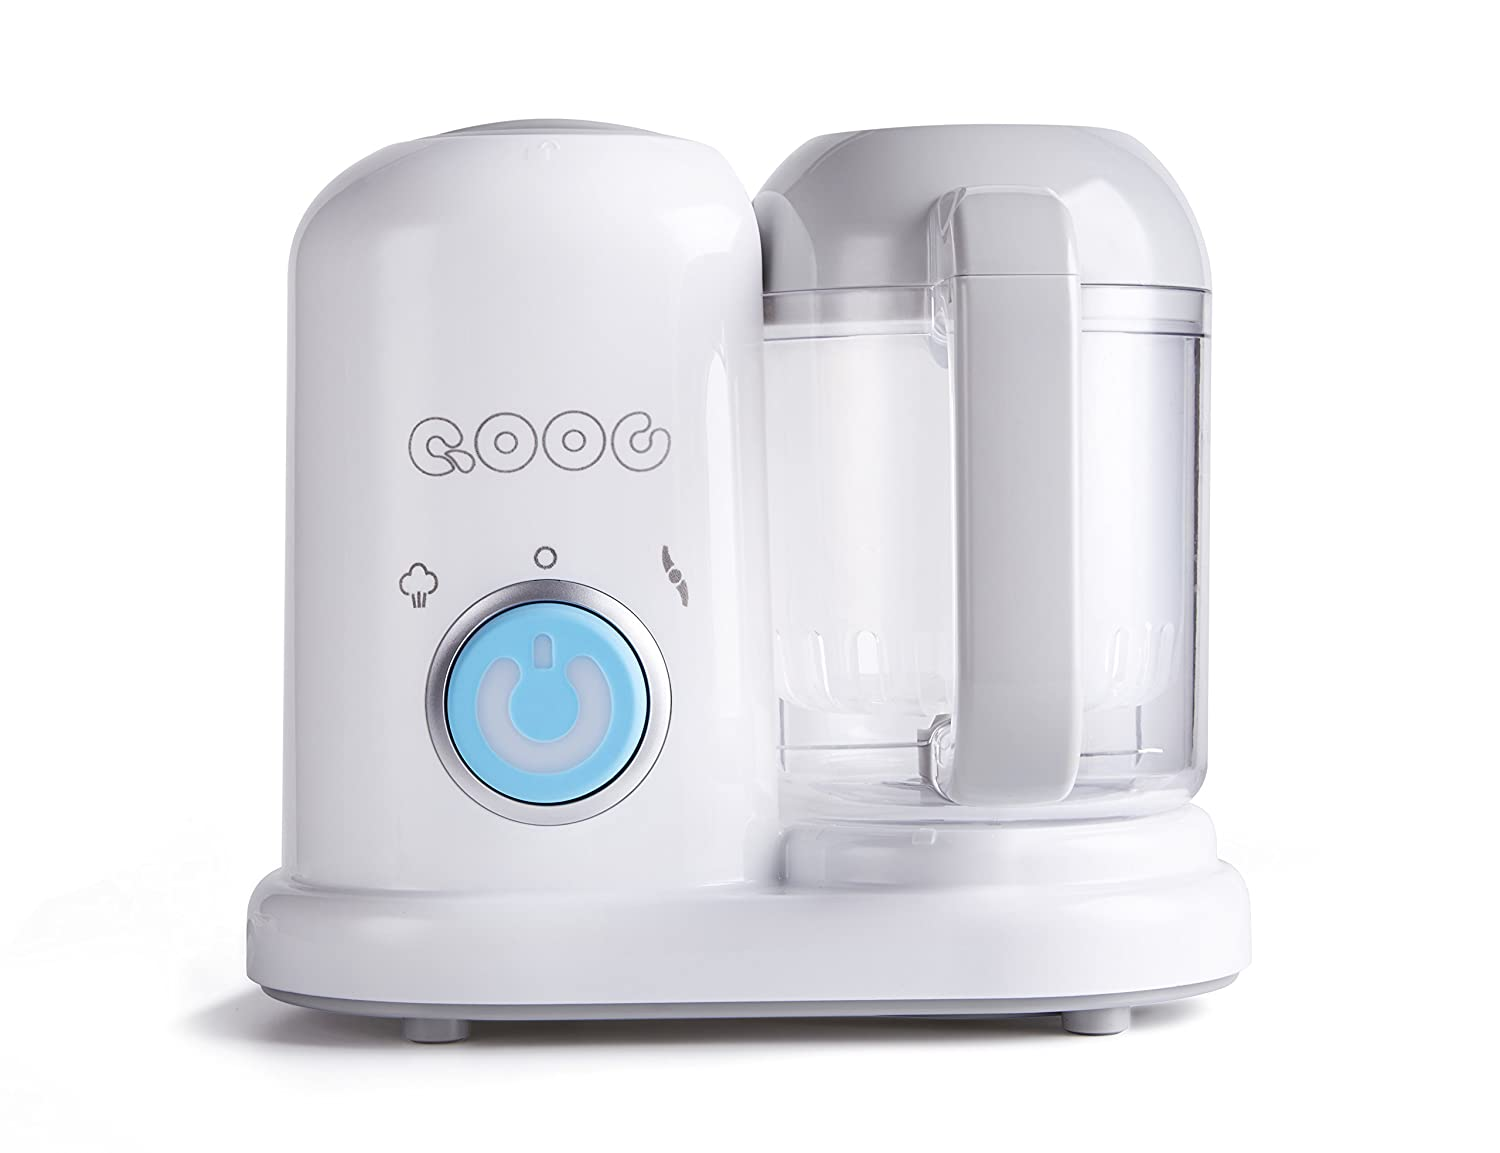 QOOC 4-in-1 Mini Baby Food Maker QOOC01